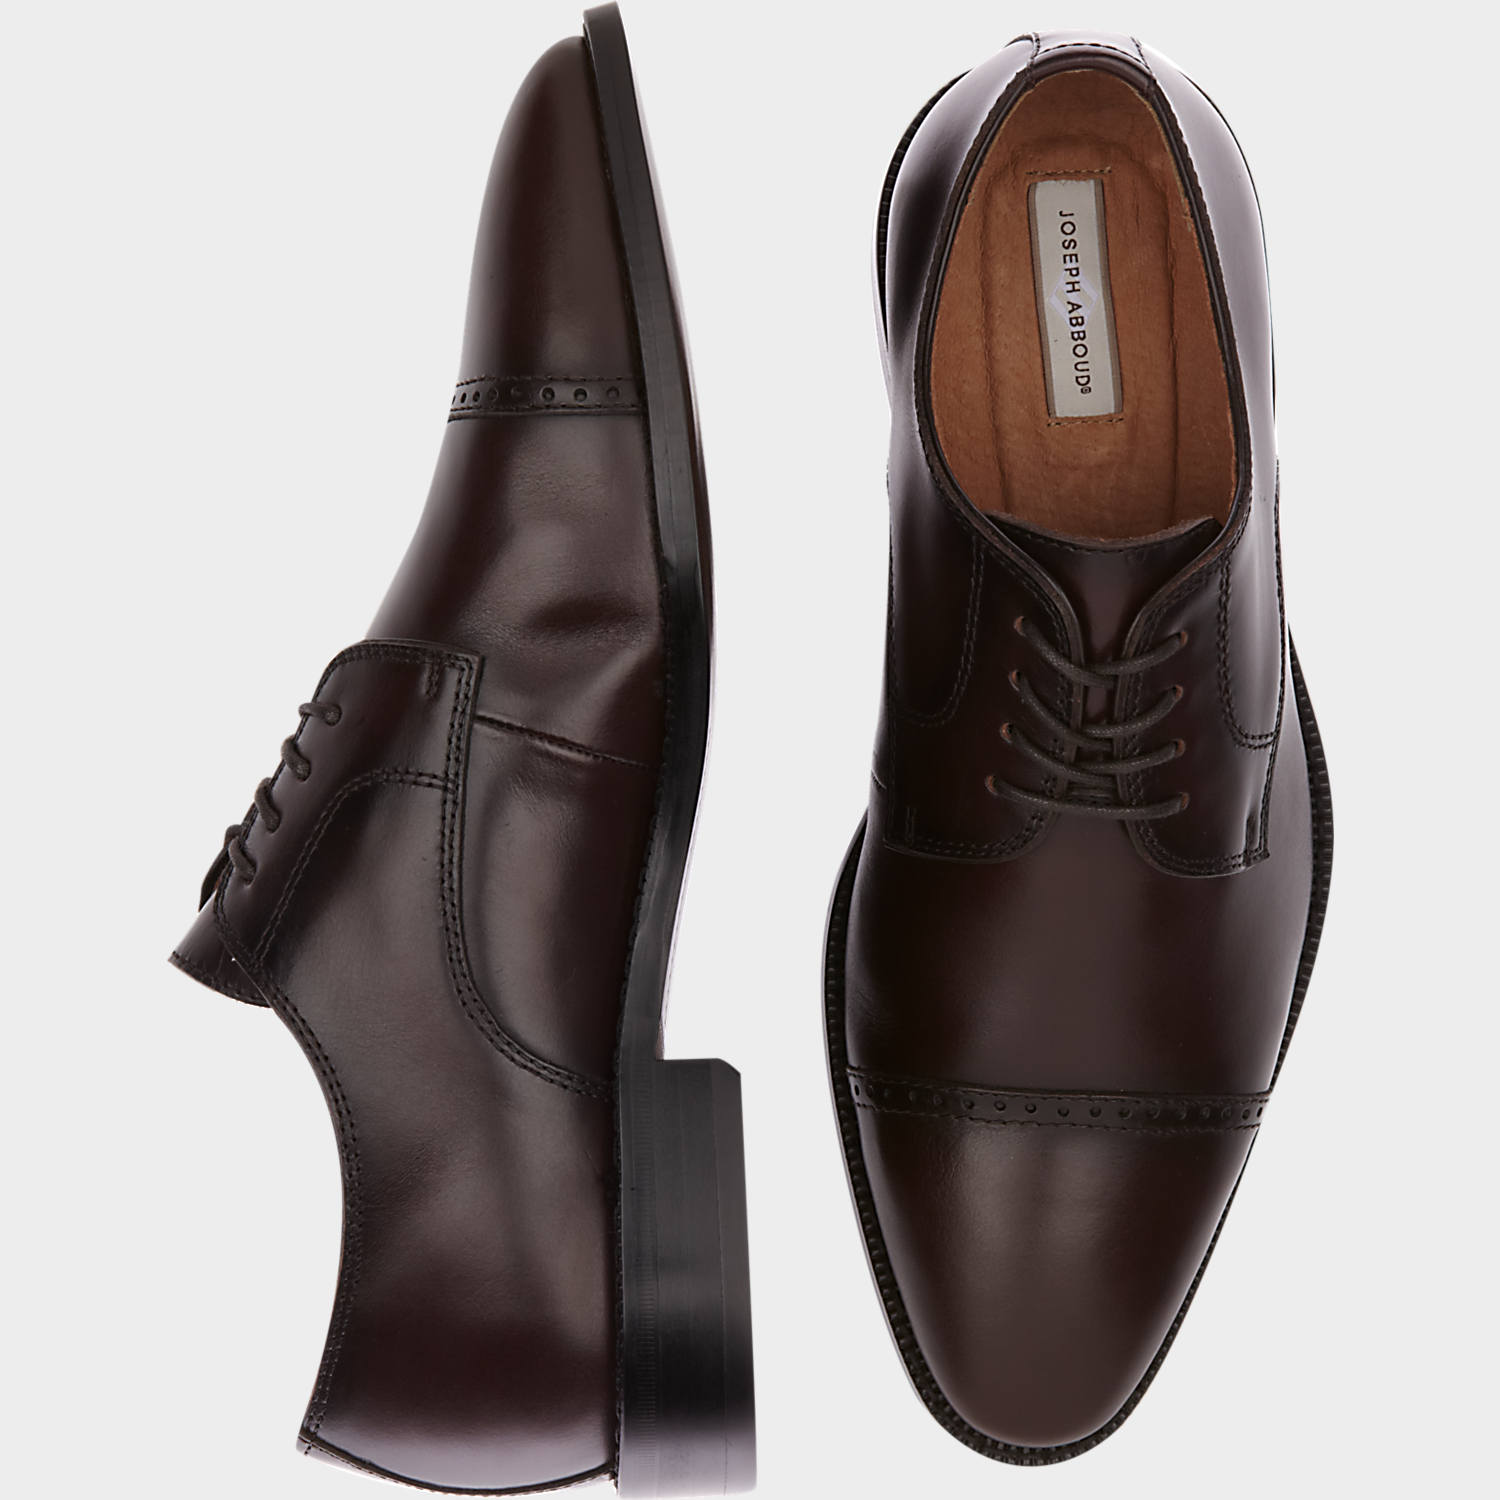 Classy and ideal mens formal shoes